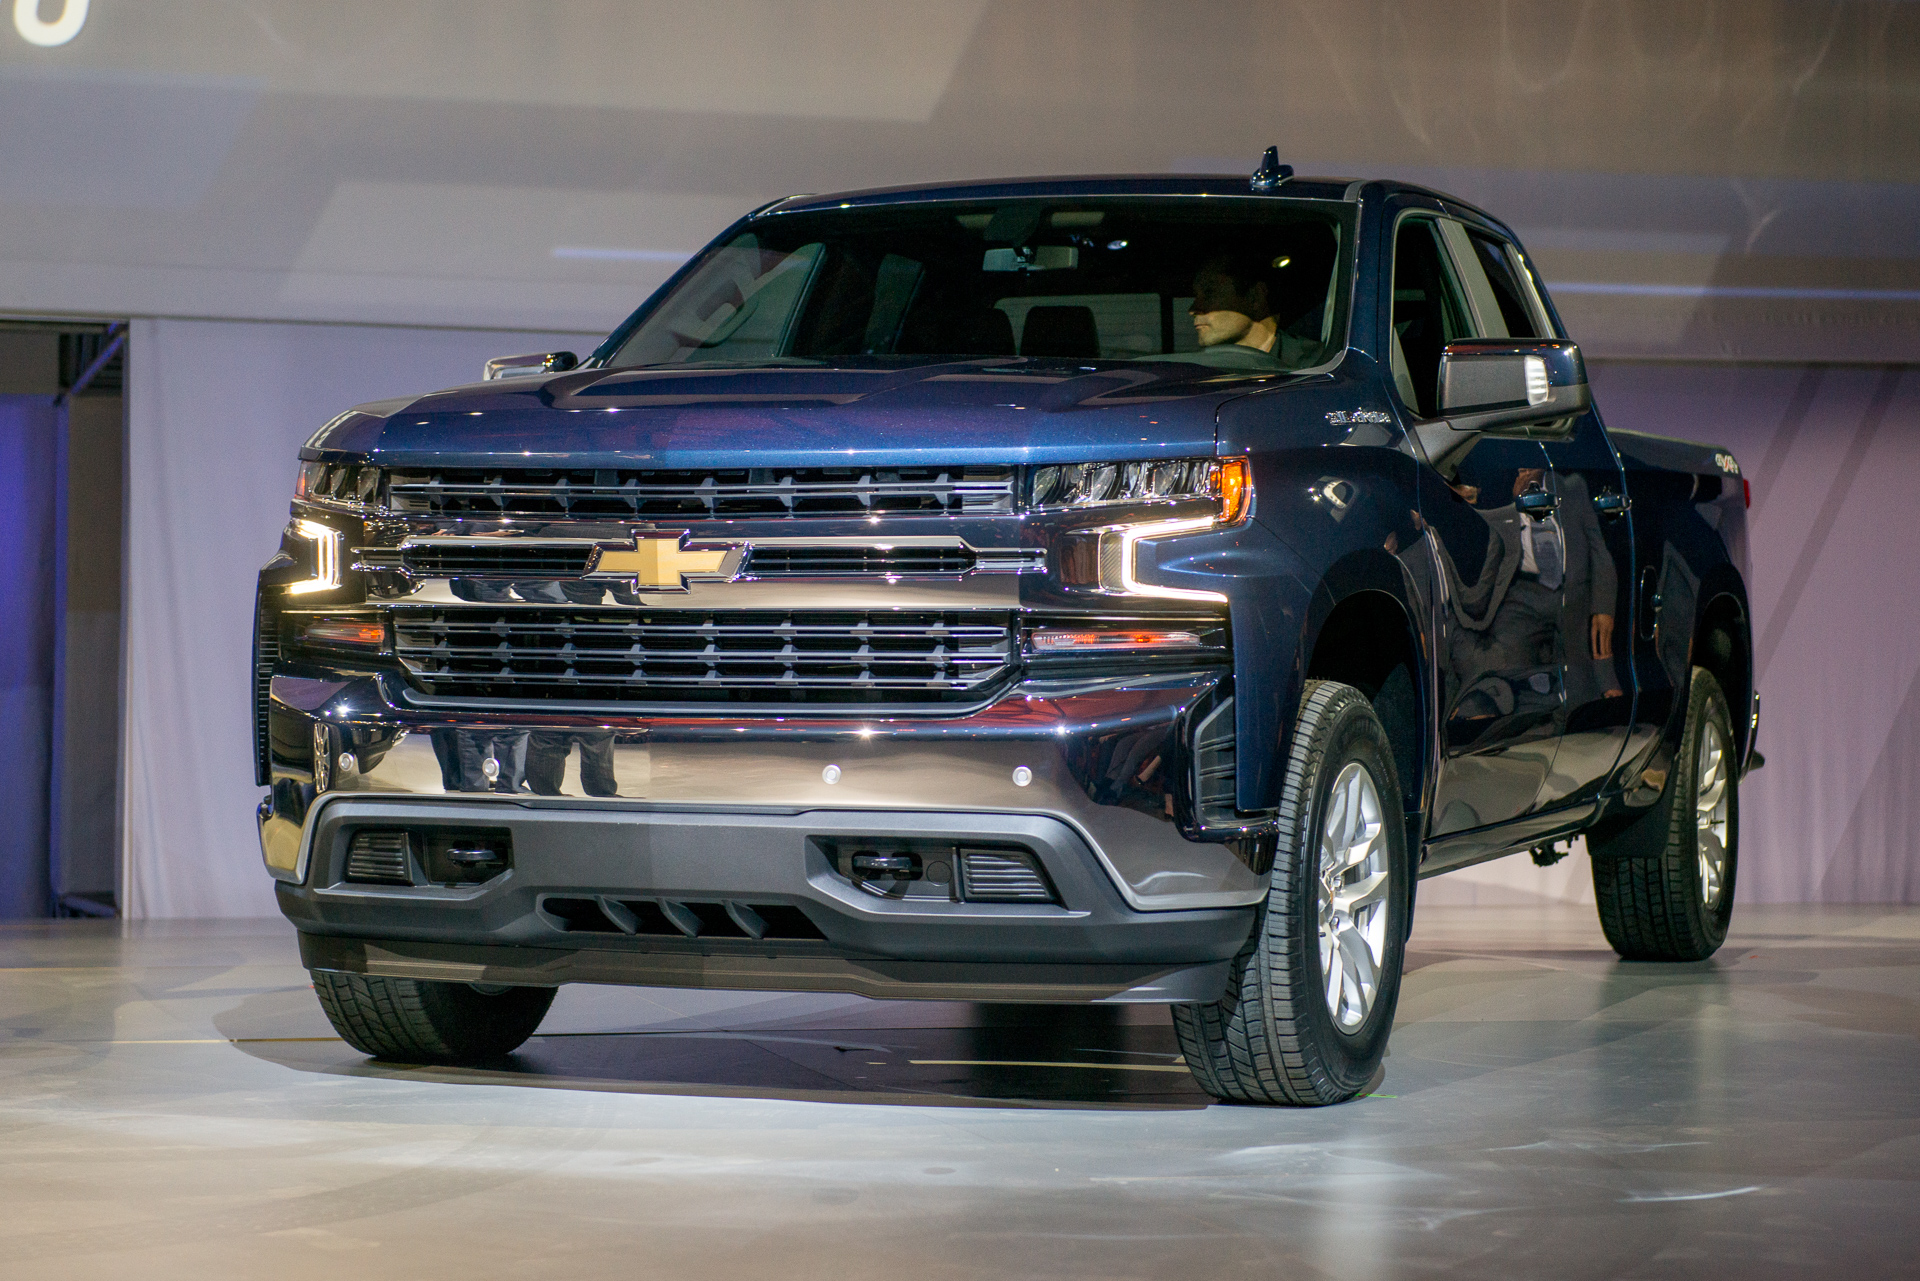 2019 Chevy Silverado How A Thirsty Pickup Gets More Fuel Efficient